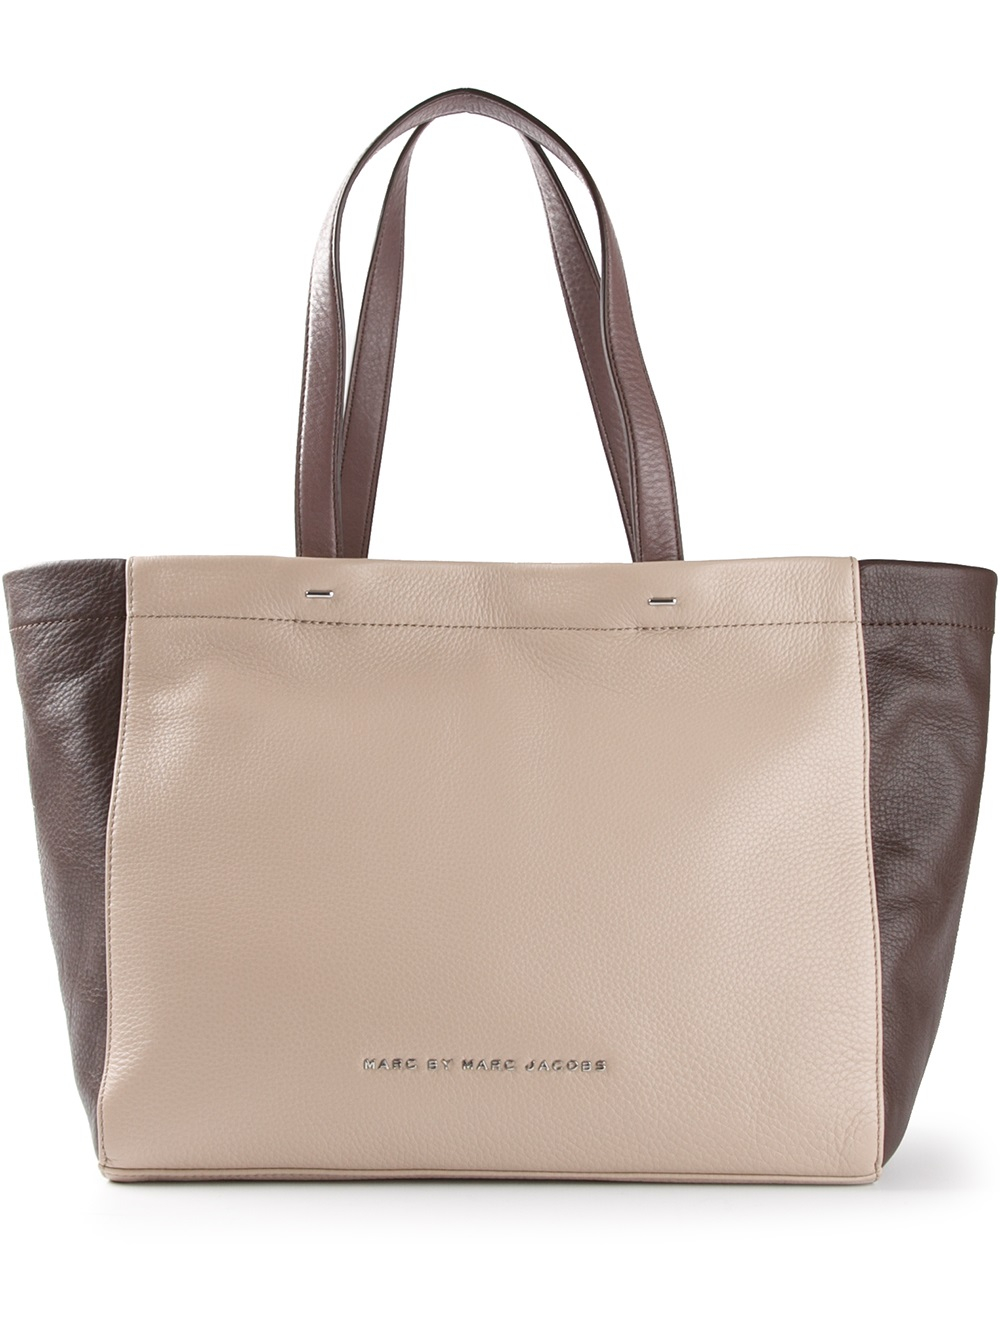 Marc by marc jacobs Whats The T Tote Bag in Natural | Lyst